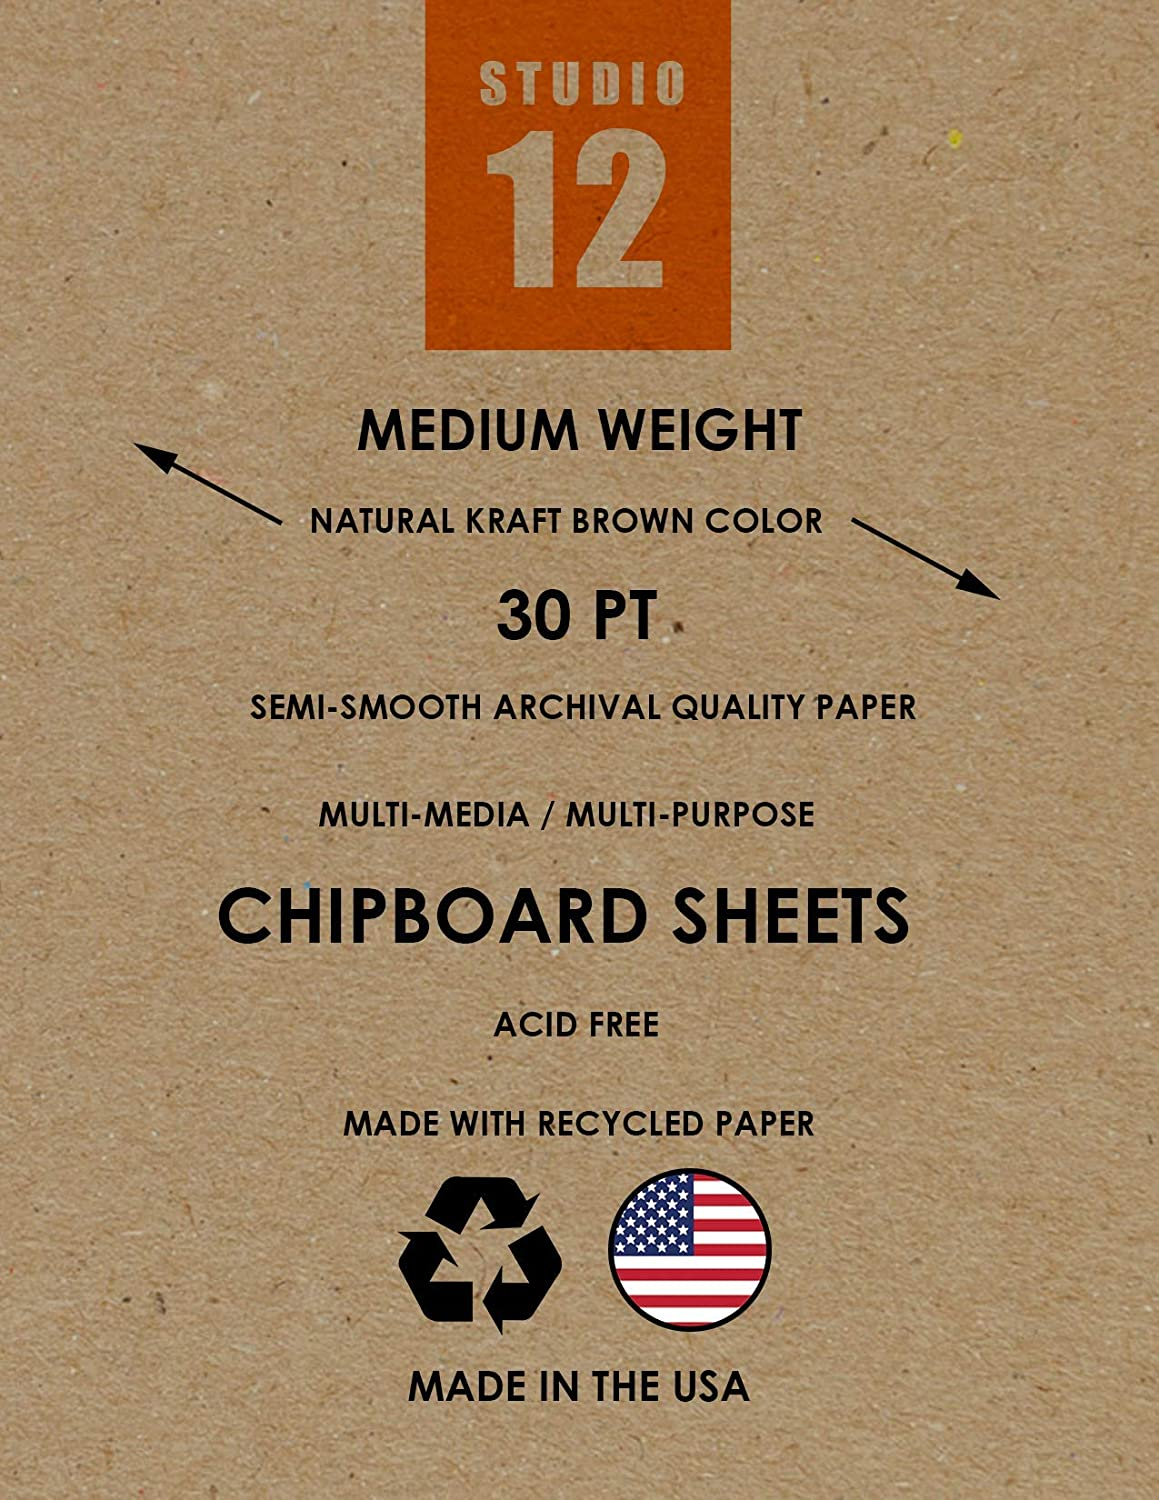 Natural Kraft Brown Studio 12 Chipboard Sheets 25 Sheets Great for Model Building Heavy Weight Scrap Booking 5.5 x 8.5 Creative Projects and Protecting Valuable Photos and documents.